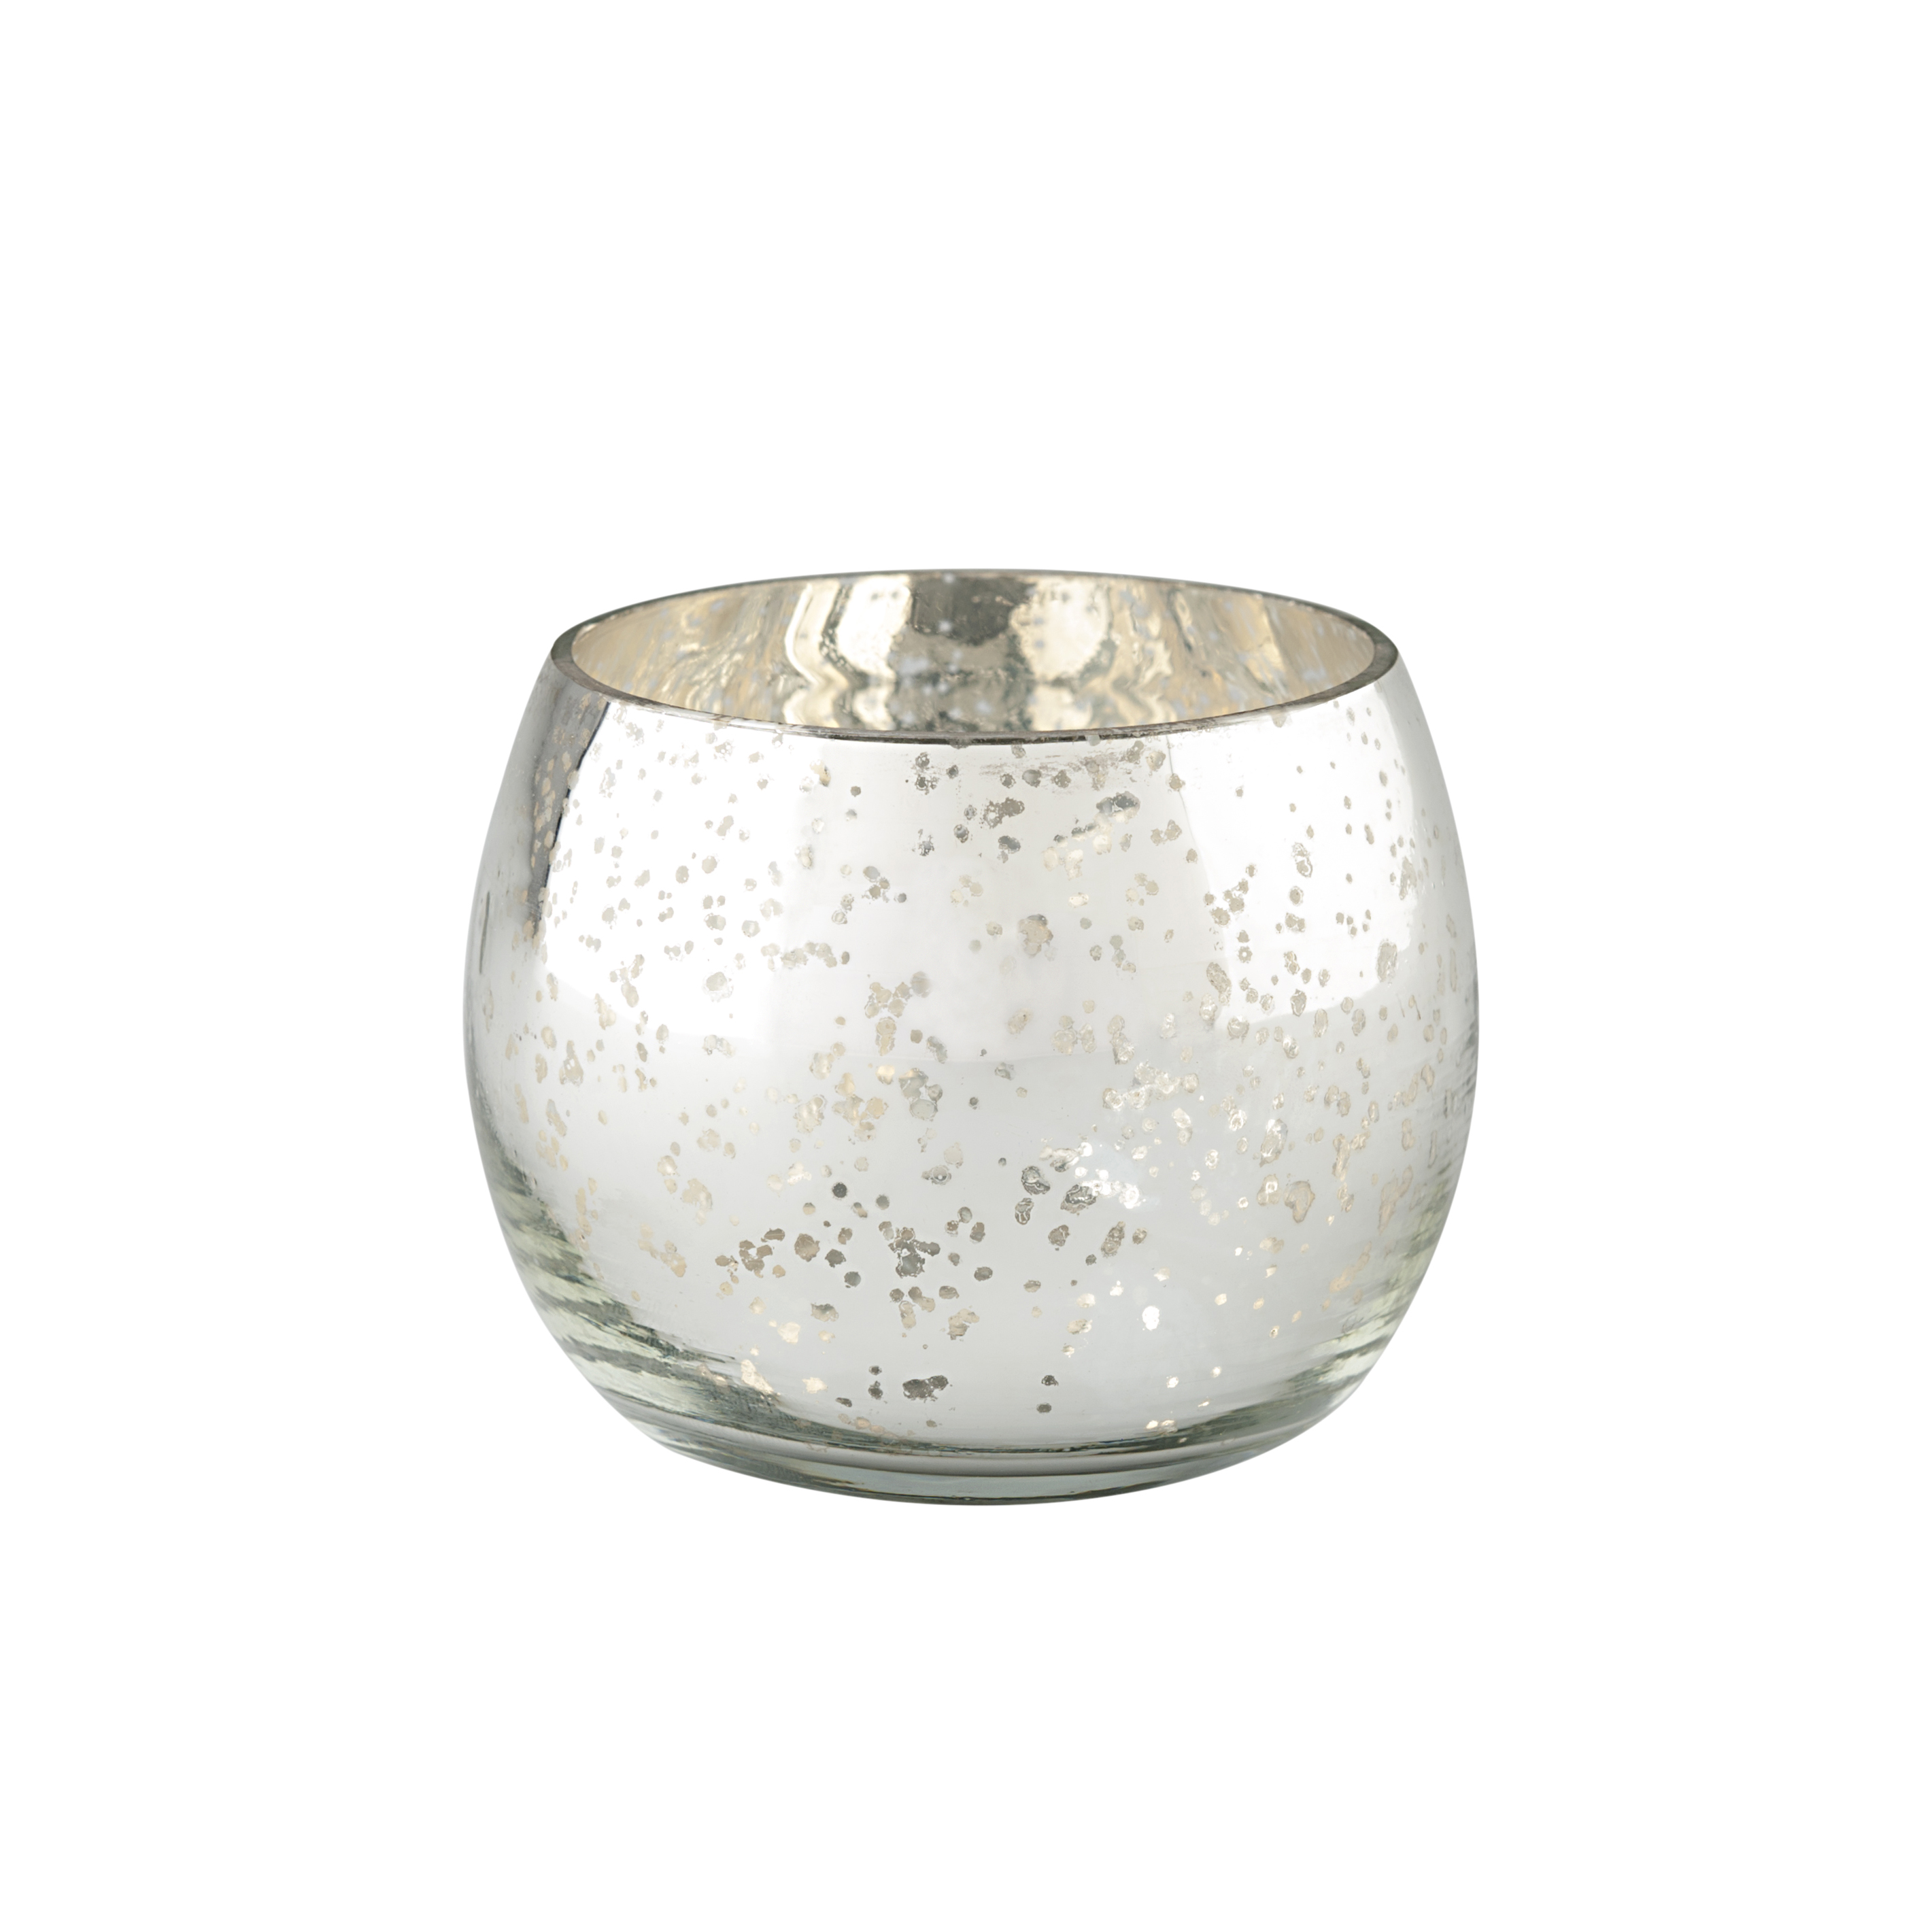 Large Domed Glass Tealight Holder - Silver